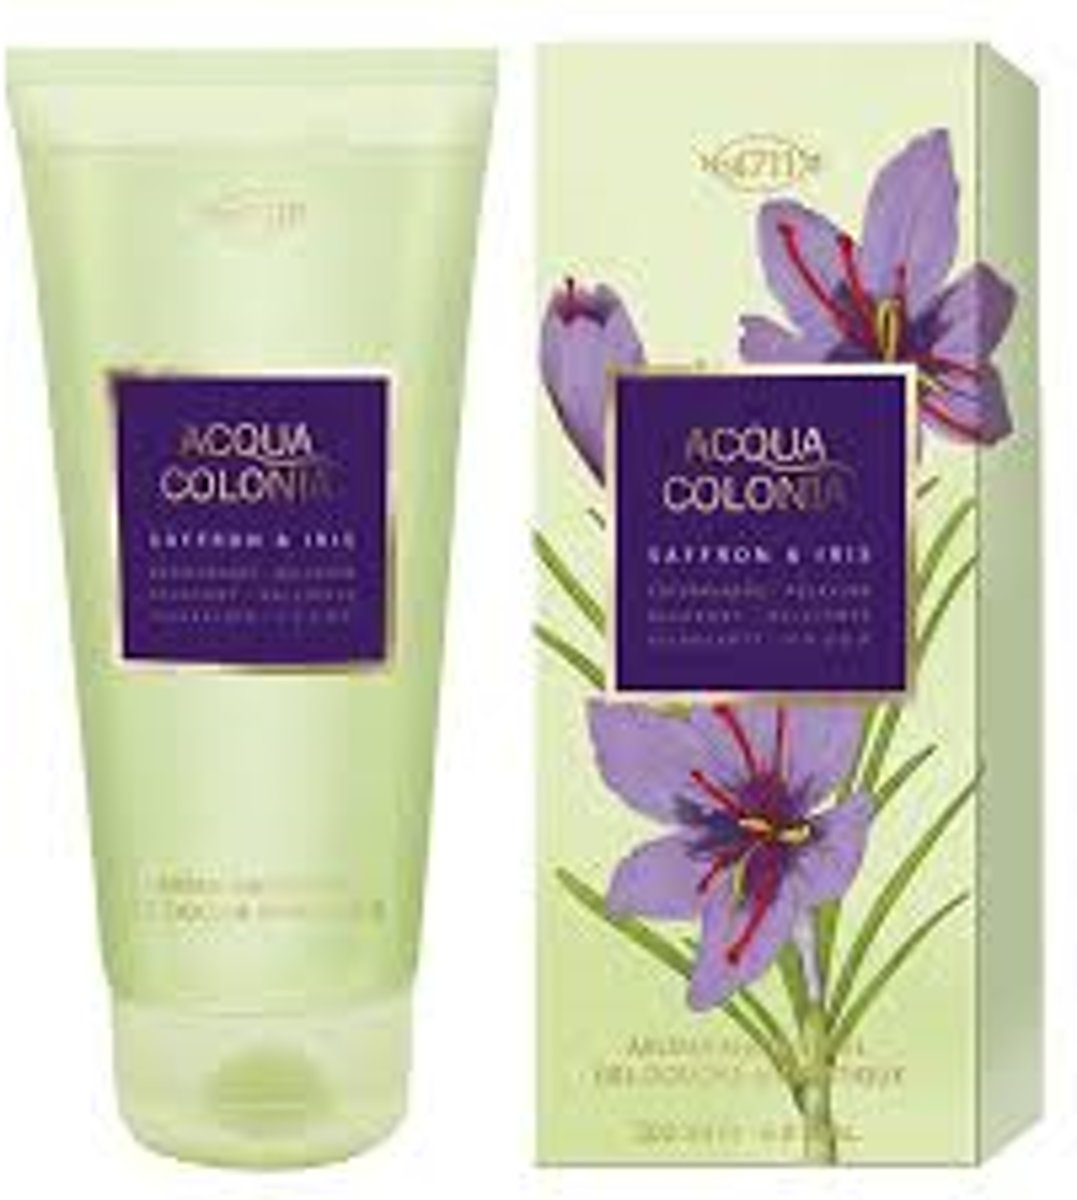 Acqua Colonia Saffron & Iris Showergel